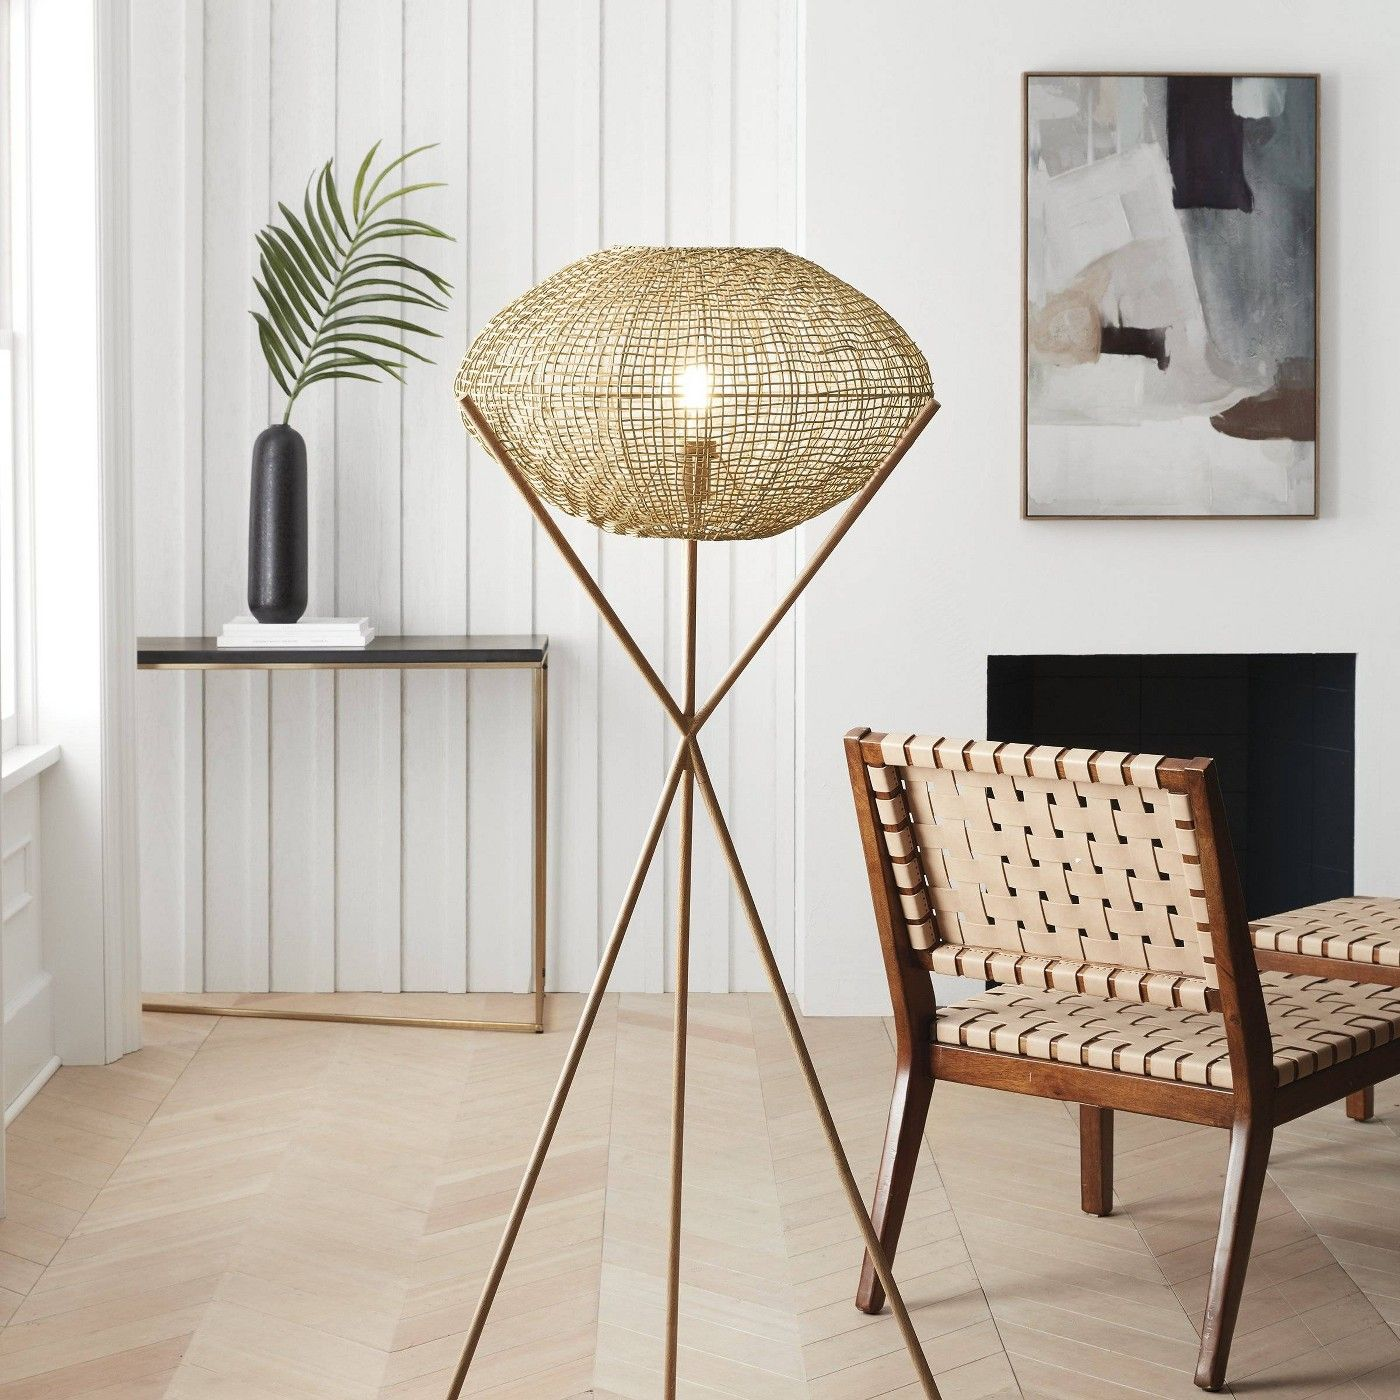 Natural Woven Tripod Floor Lamp Natural Includes Energy Efficient Light Bulb Project 62 Lea Tripod Floor Lamps Energy Efficient Light Bulbs Tripod Floor